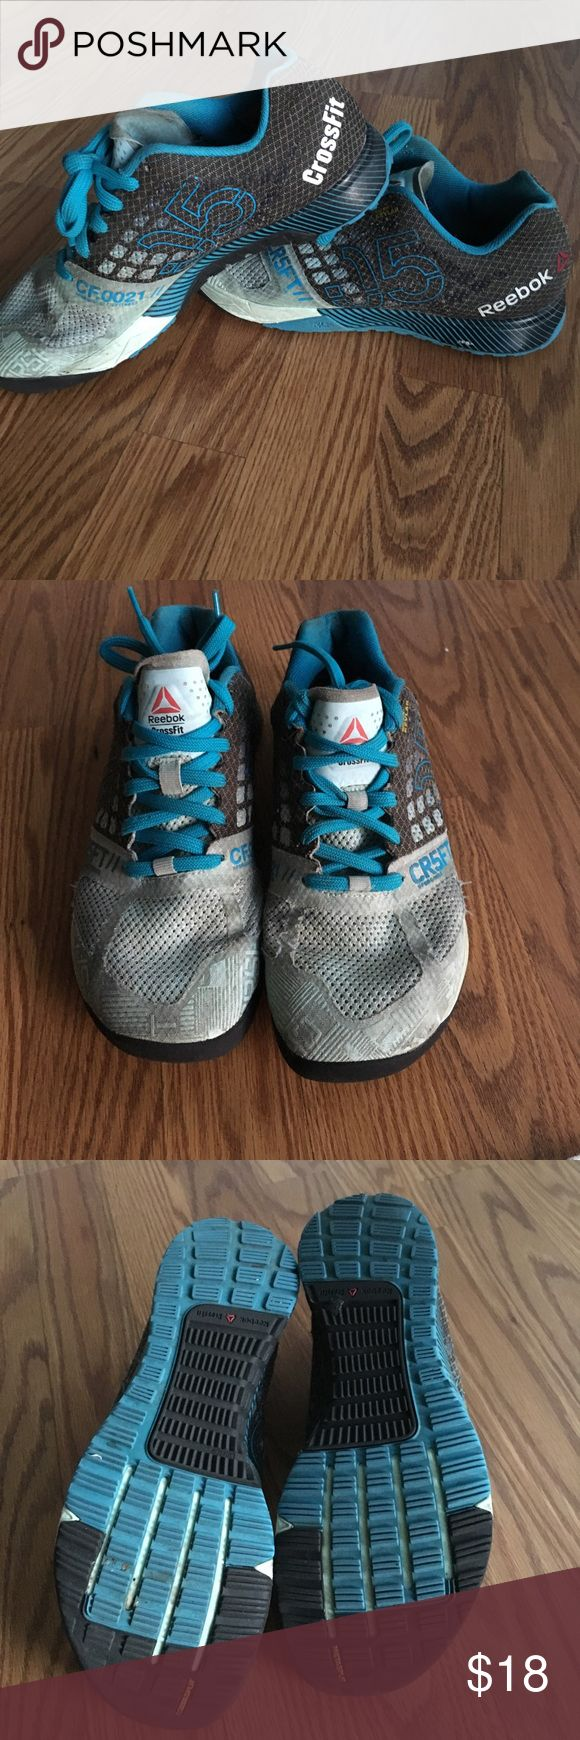 7.5 Reebok Nano 5 Used Womens Reebok Nano 5! I bought a new pair and just need to room for them :) They have been used a good  amount times as you can see through the wear of the shoes. Still in good usable condition! 🔵👟⚫️ Reebok Shoes Athletic Shoes